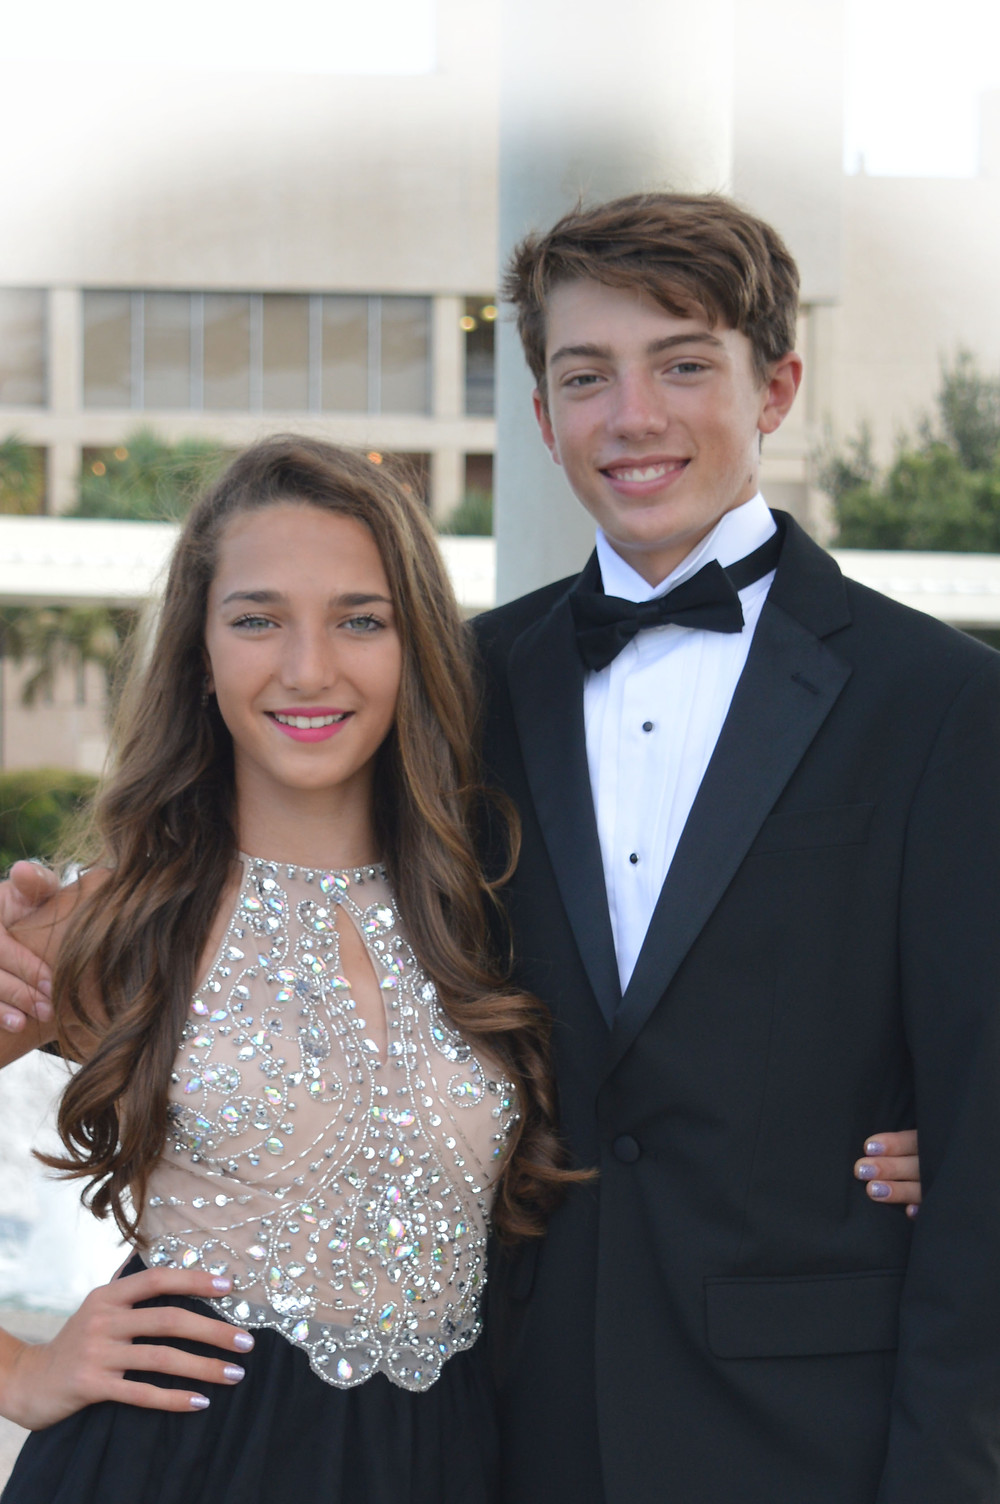 outdoor portraits, photography, prom photos, dance, homecoming, outdoor photography, lighting